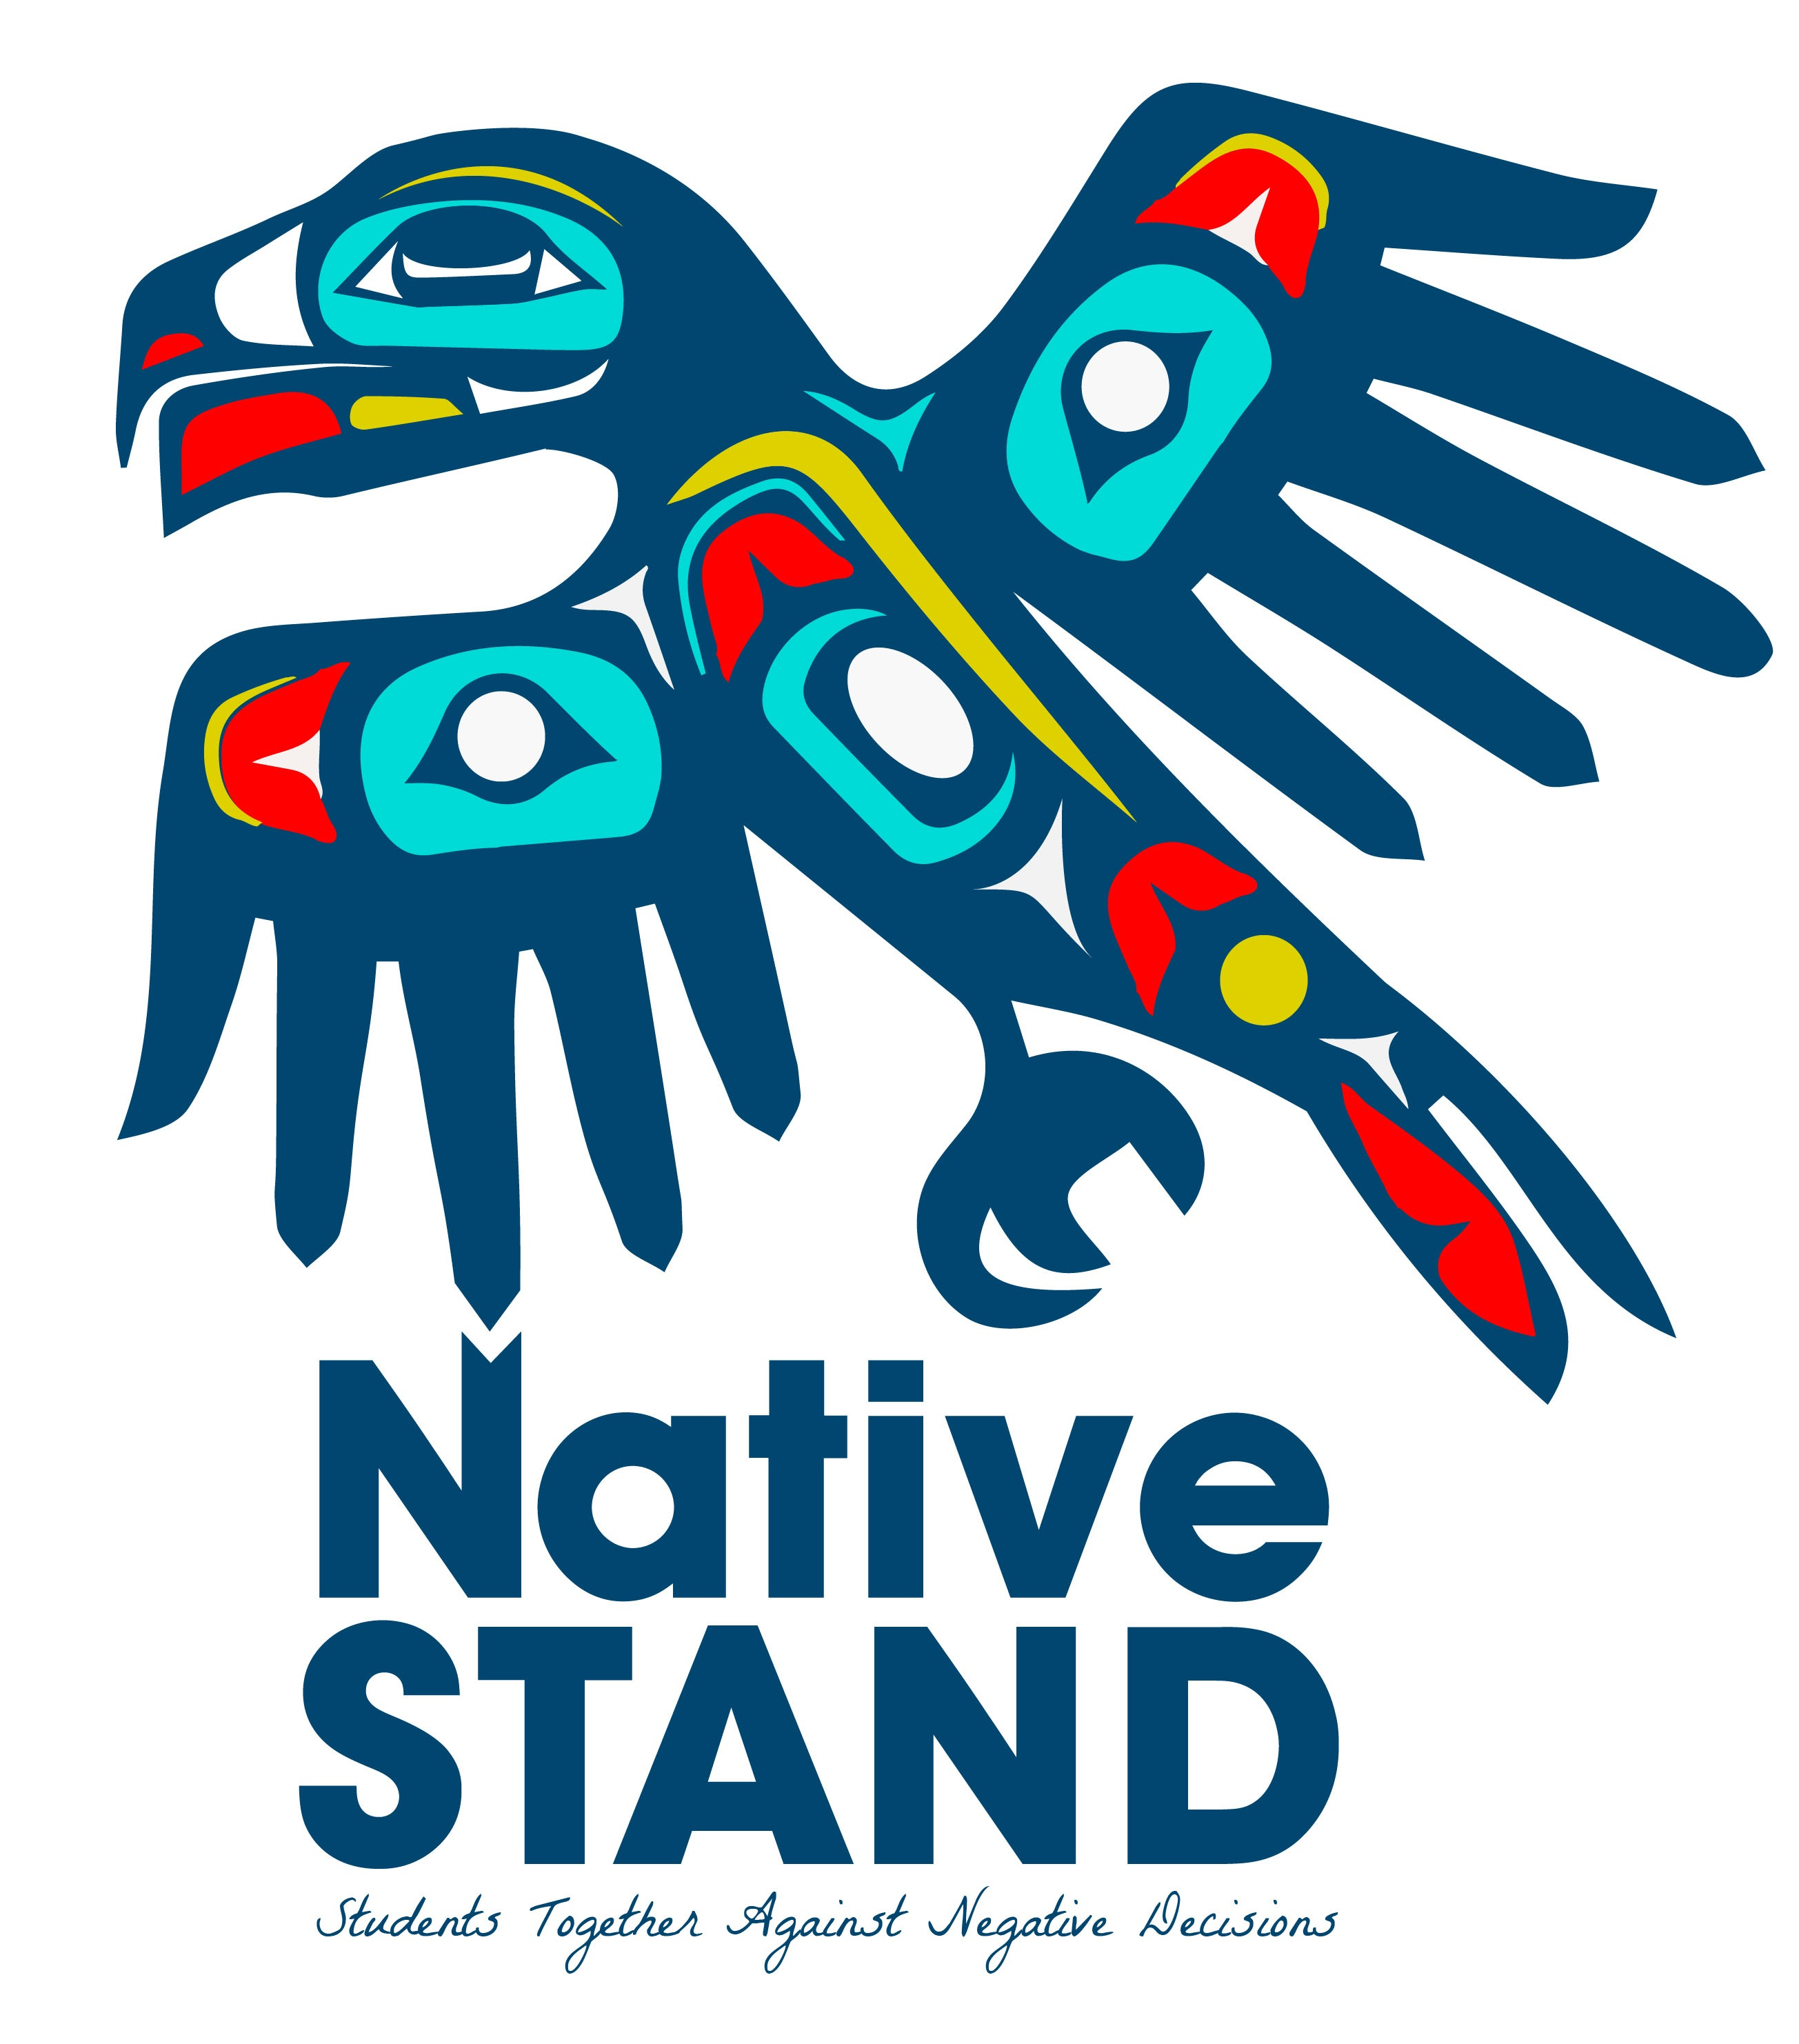 Native STAND